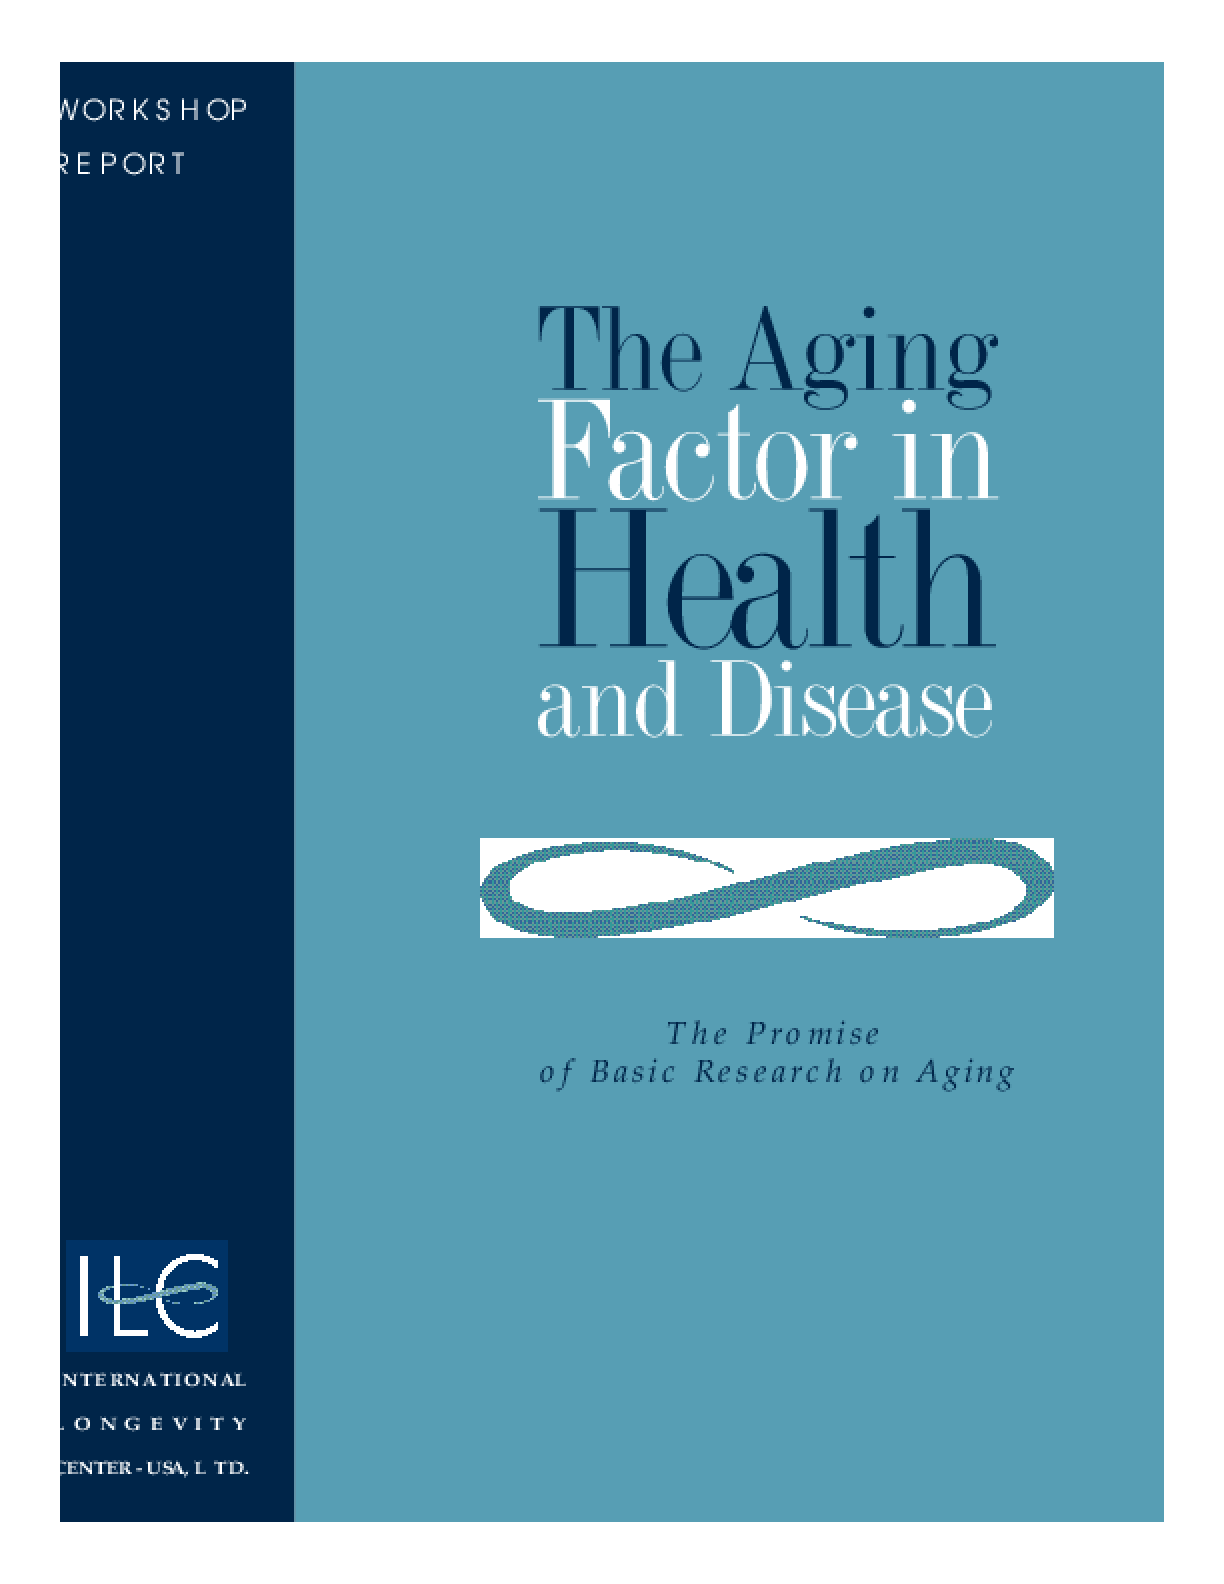 The Aging Factor in Health and Disease: The Promise of Basic Research on Aging